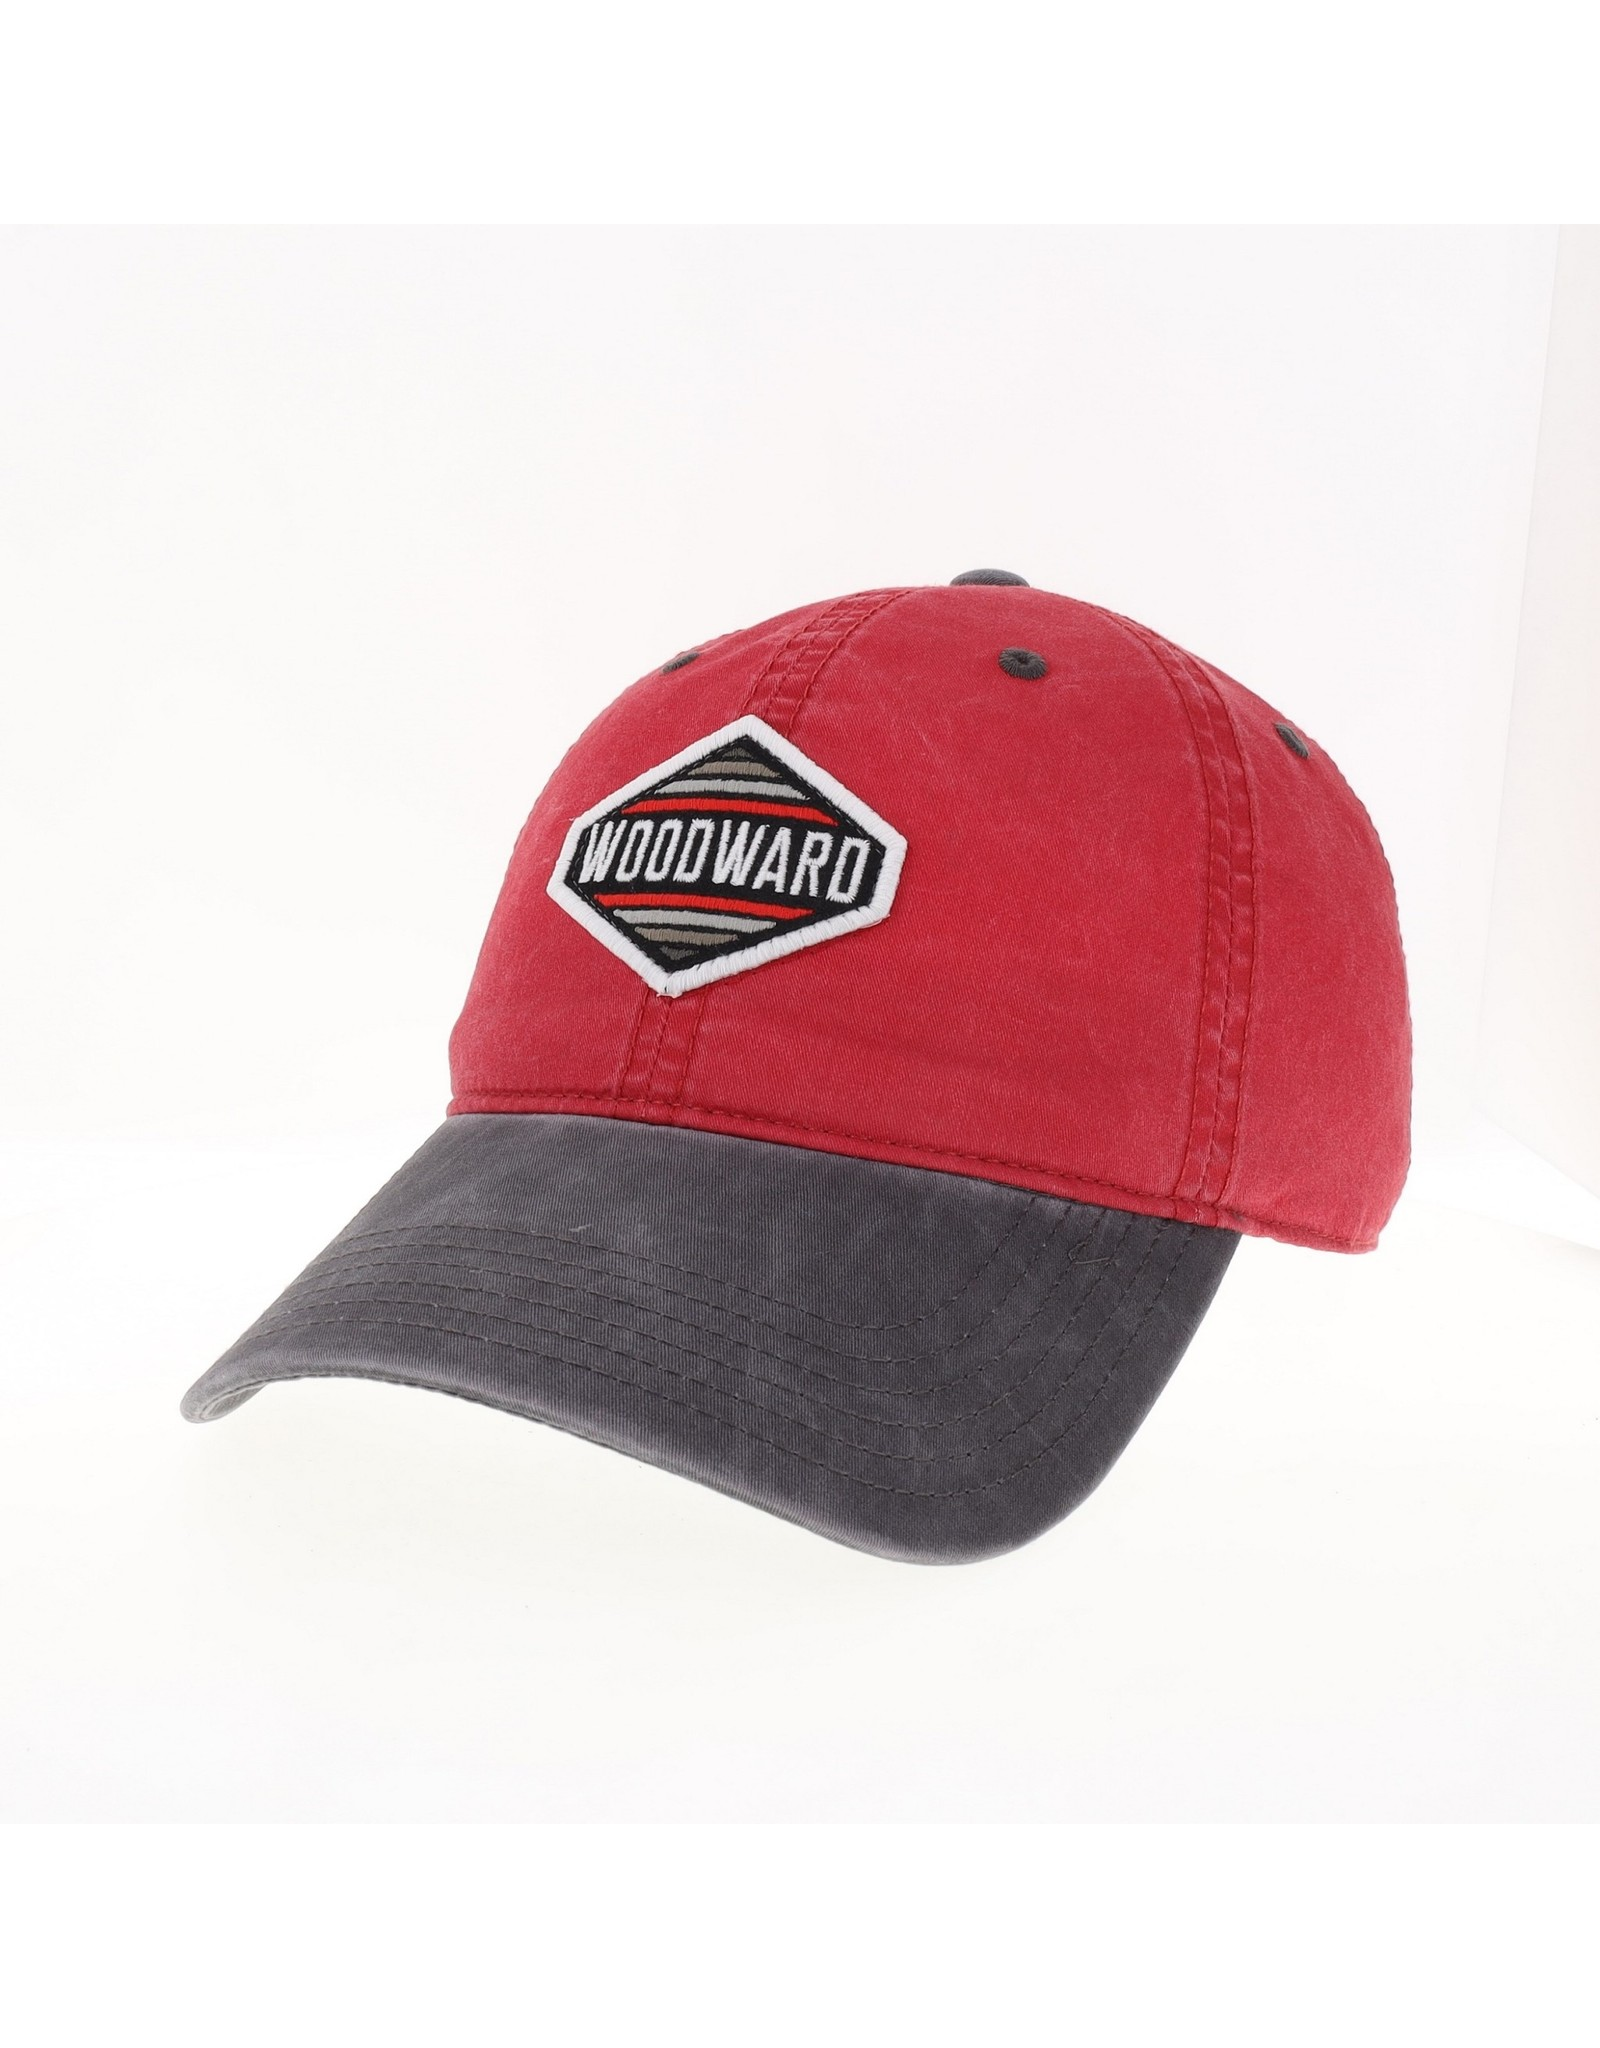 Legacy Terra Twill Relaxed legacy Cap in Red/Grey